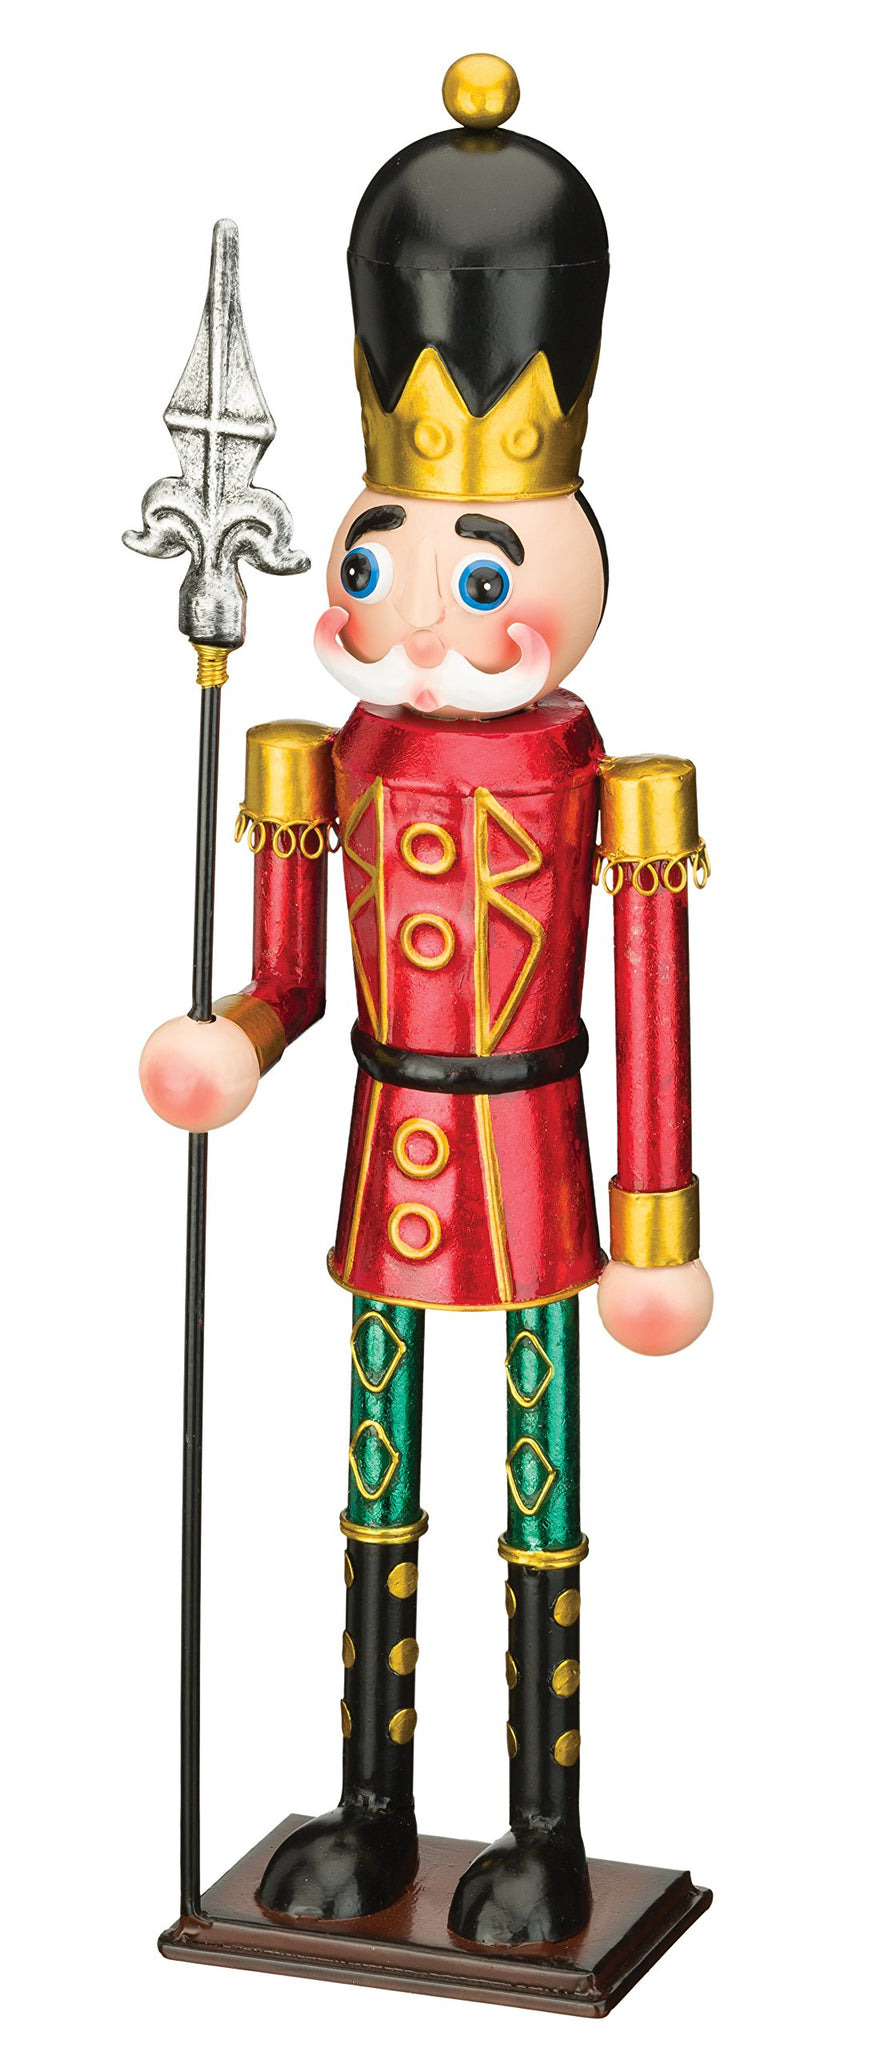 "Regal Art & Gift Toy Soldier Decor, 19"", Red Spear"